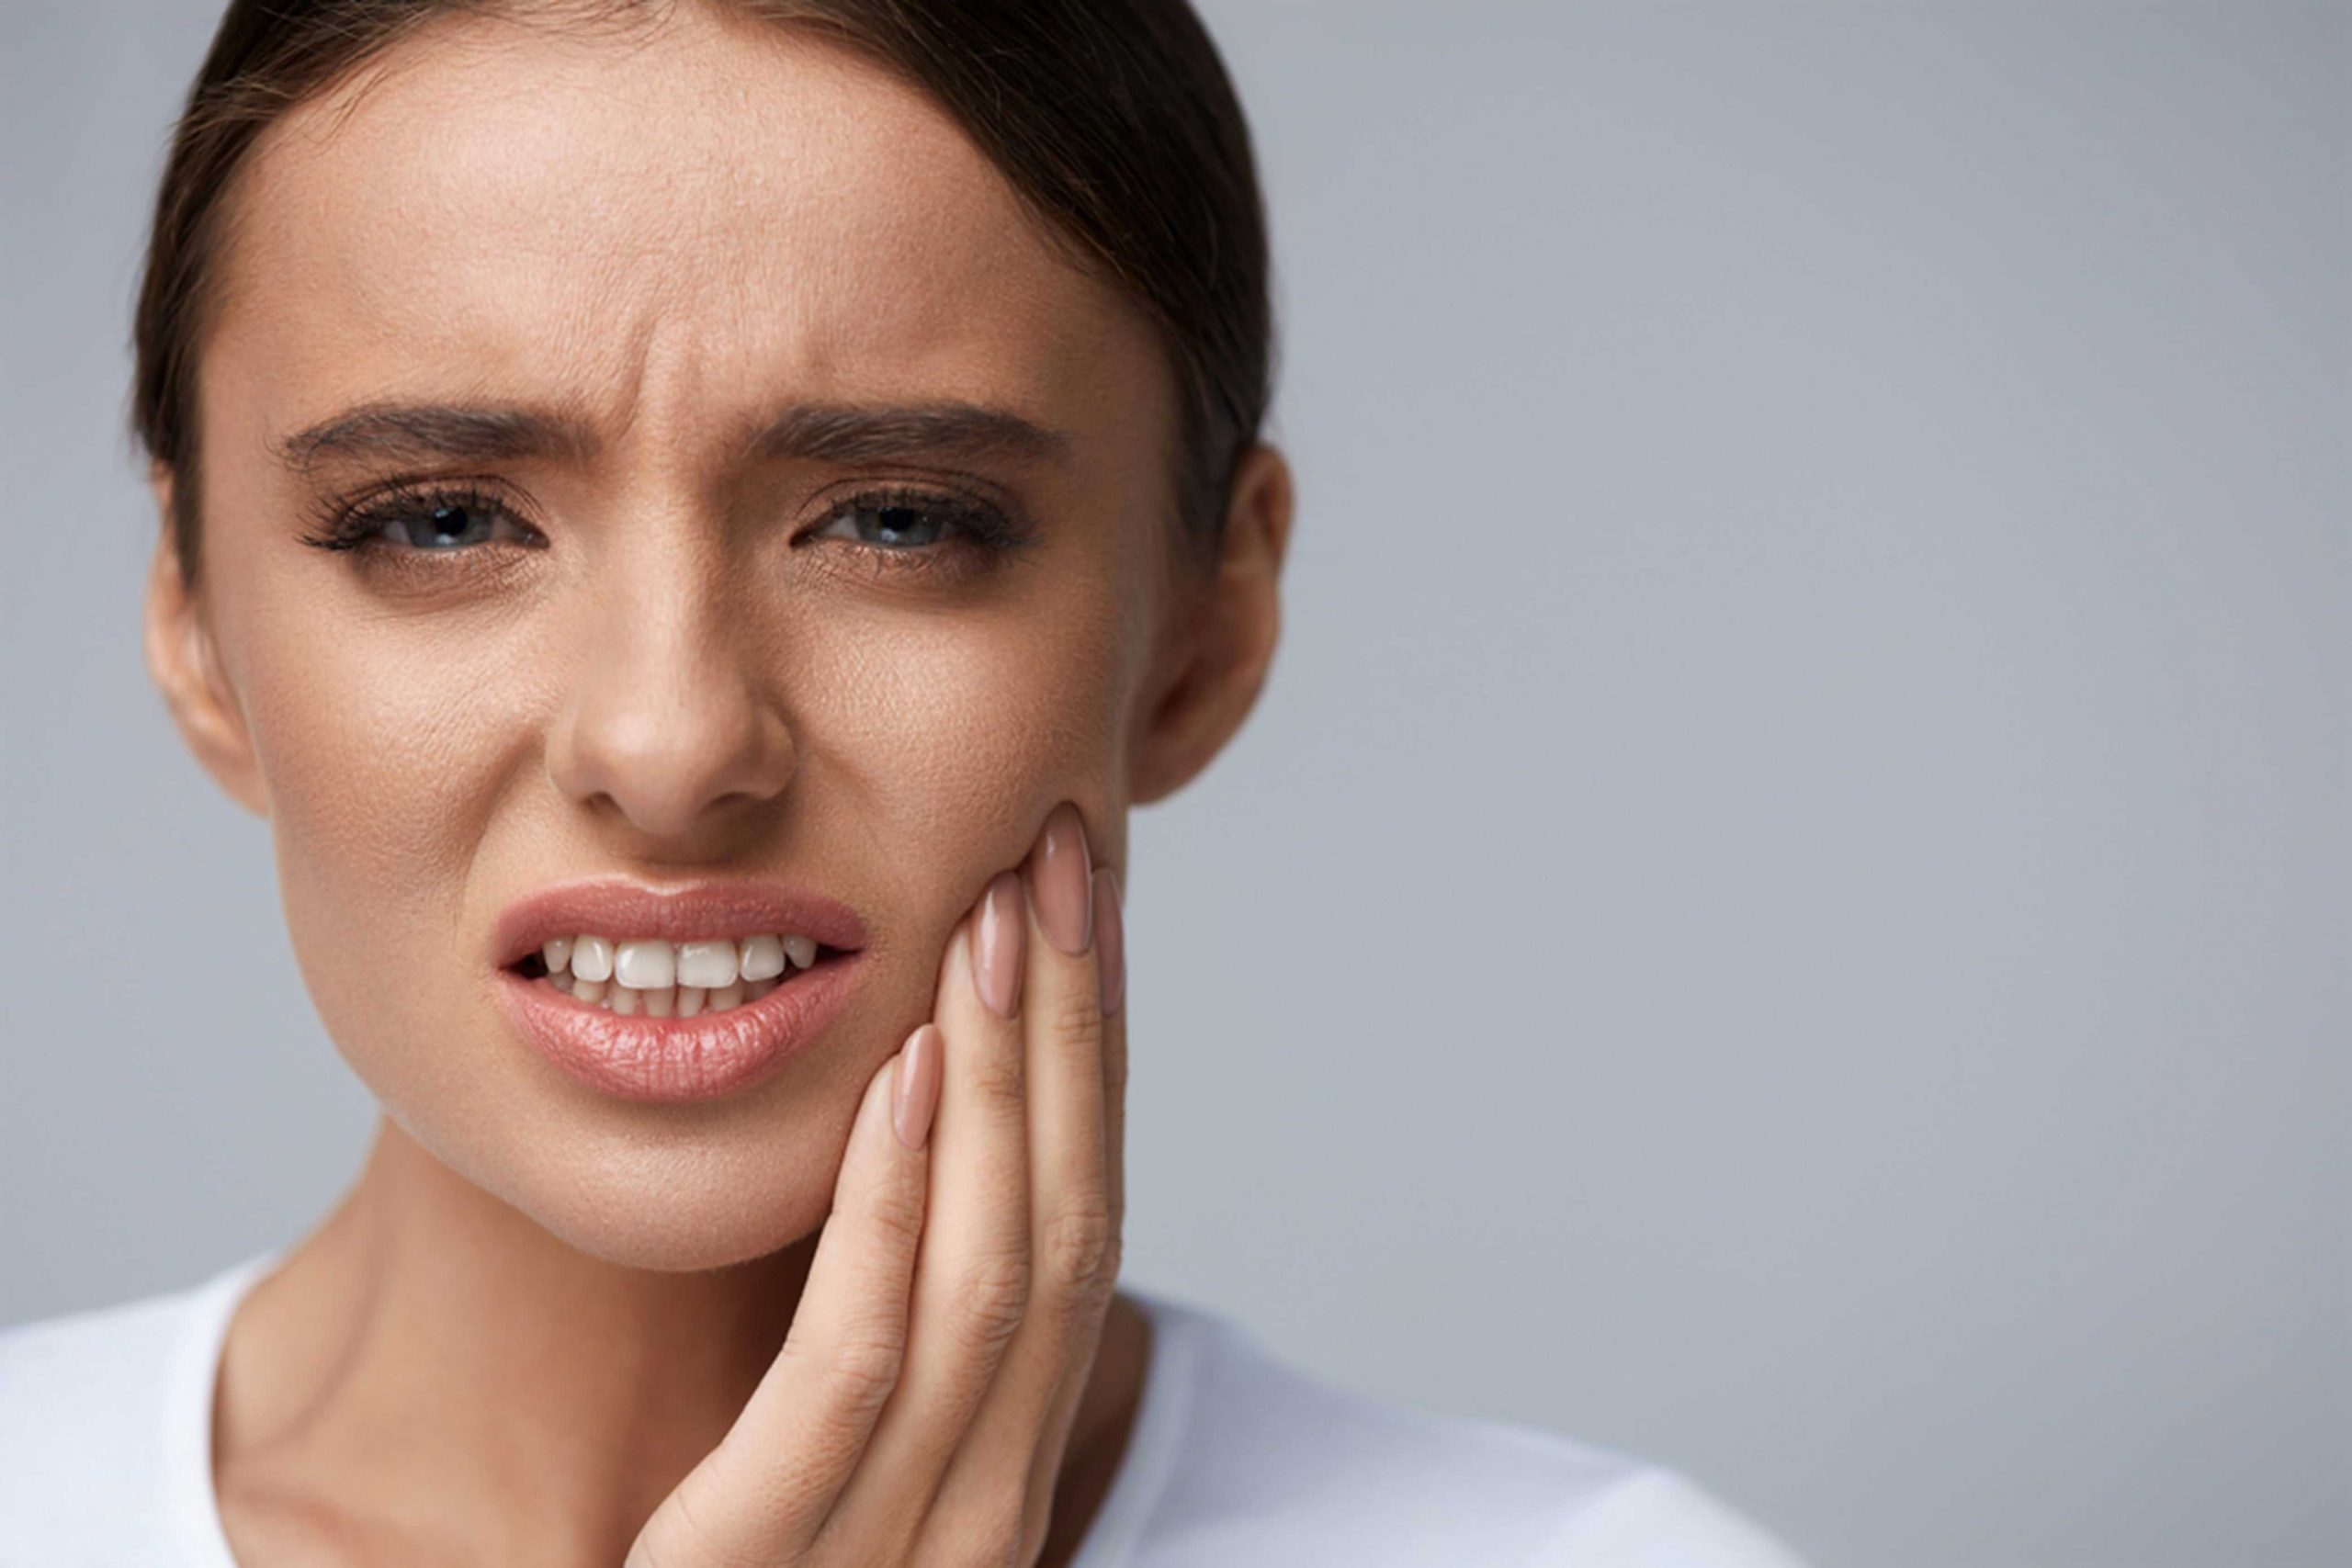 7 Effective Natural Remedies to Relieve Wisdom Tooth Pain